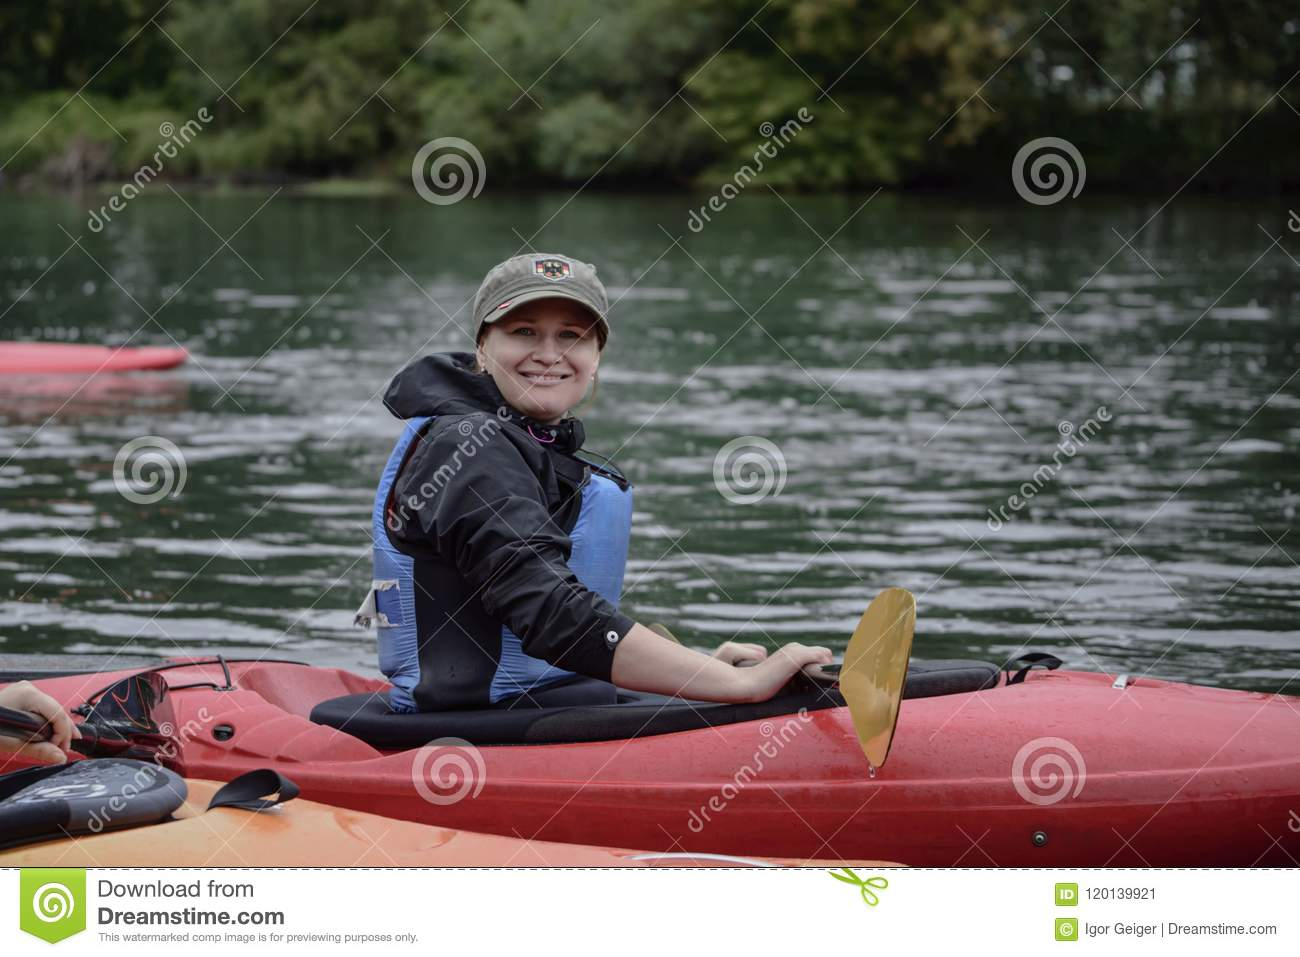 Very young blonde chicks boating